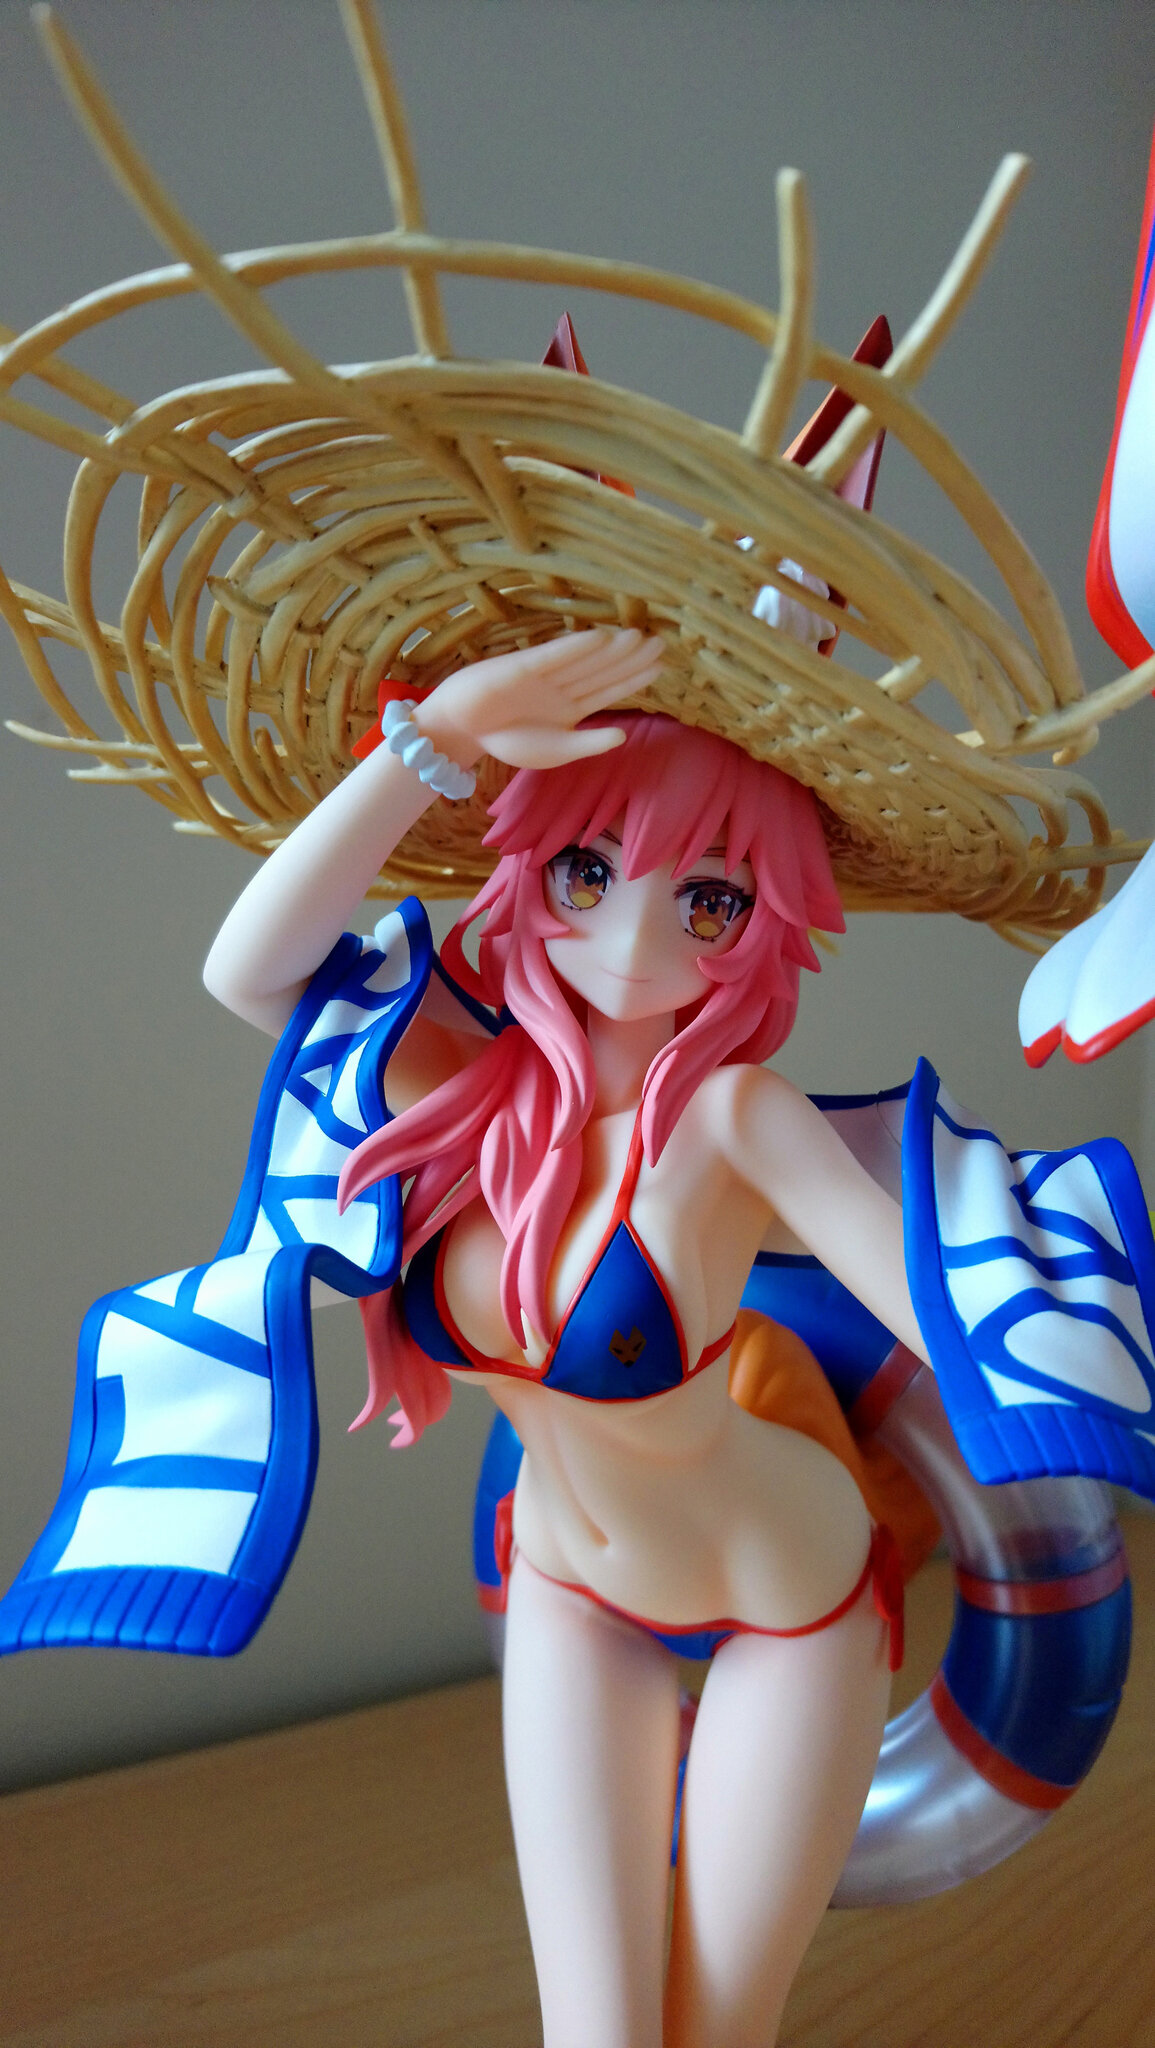 Tamamo-no-Mae (Summer Lancer) 1/7 (Kotobukiya)